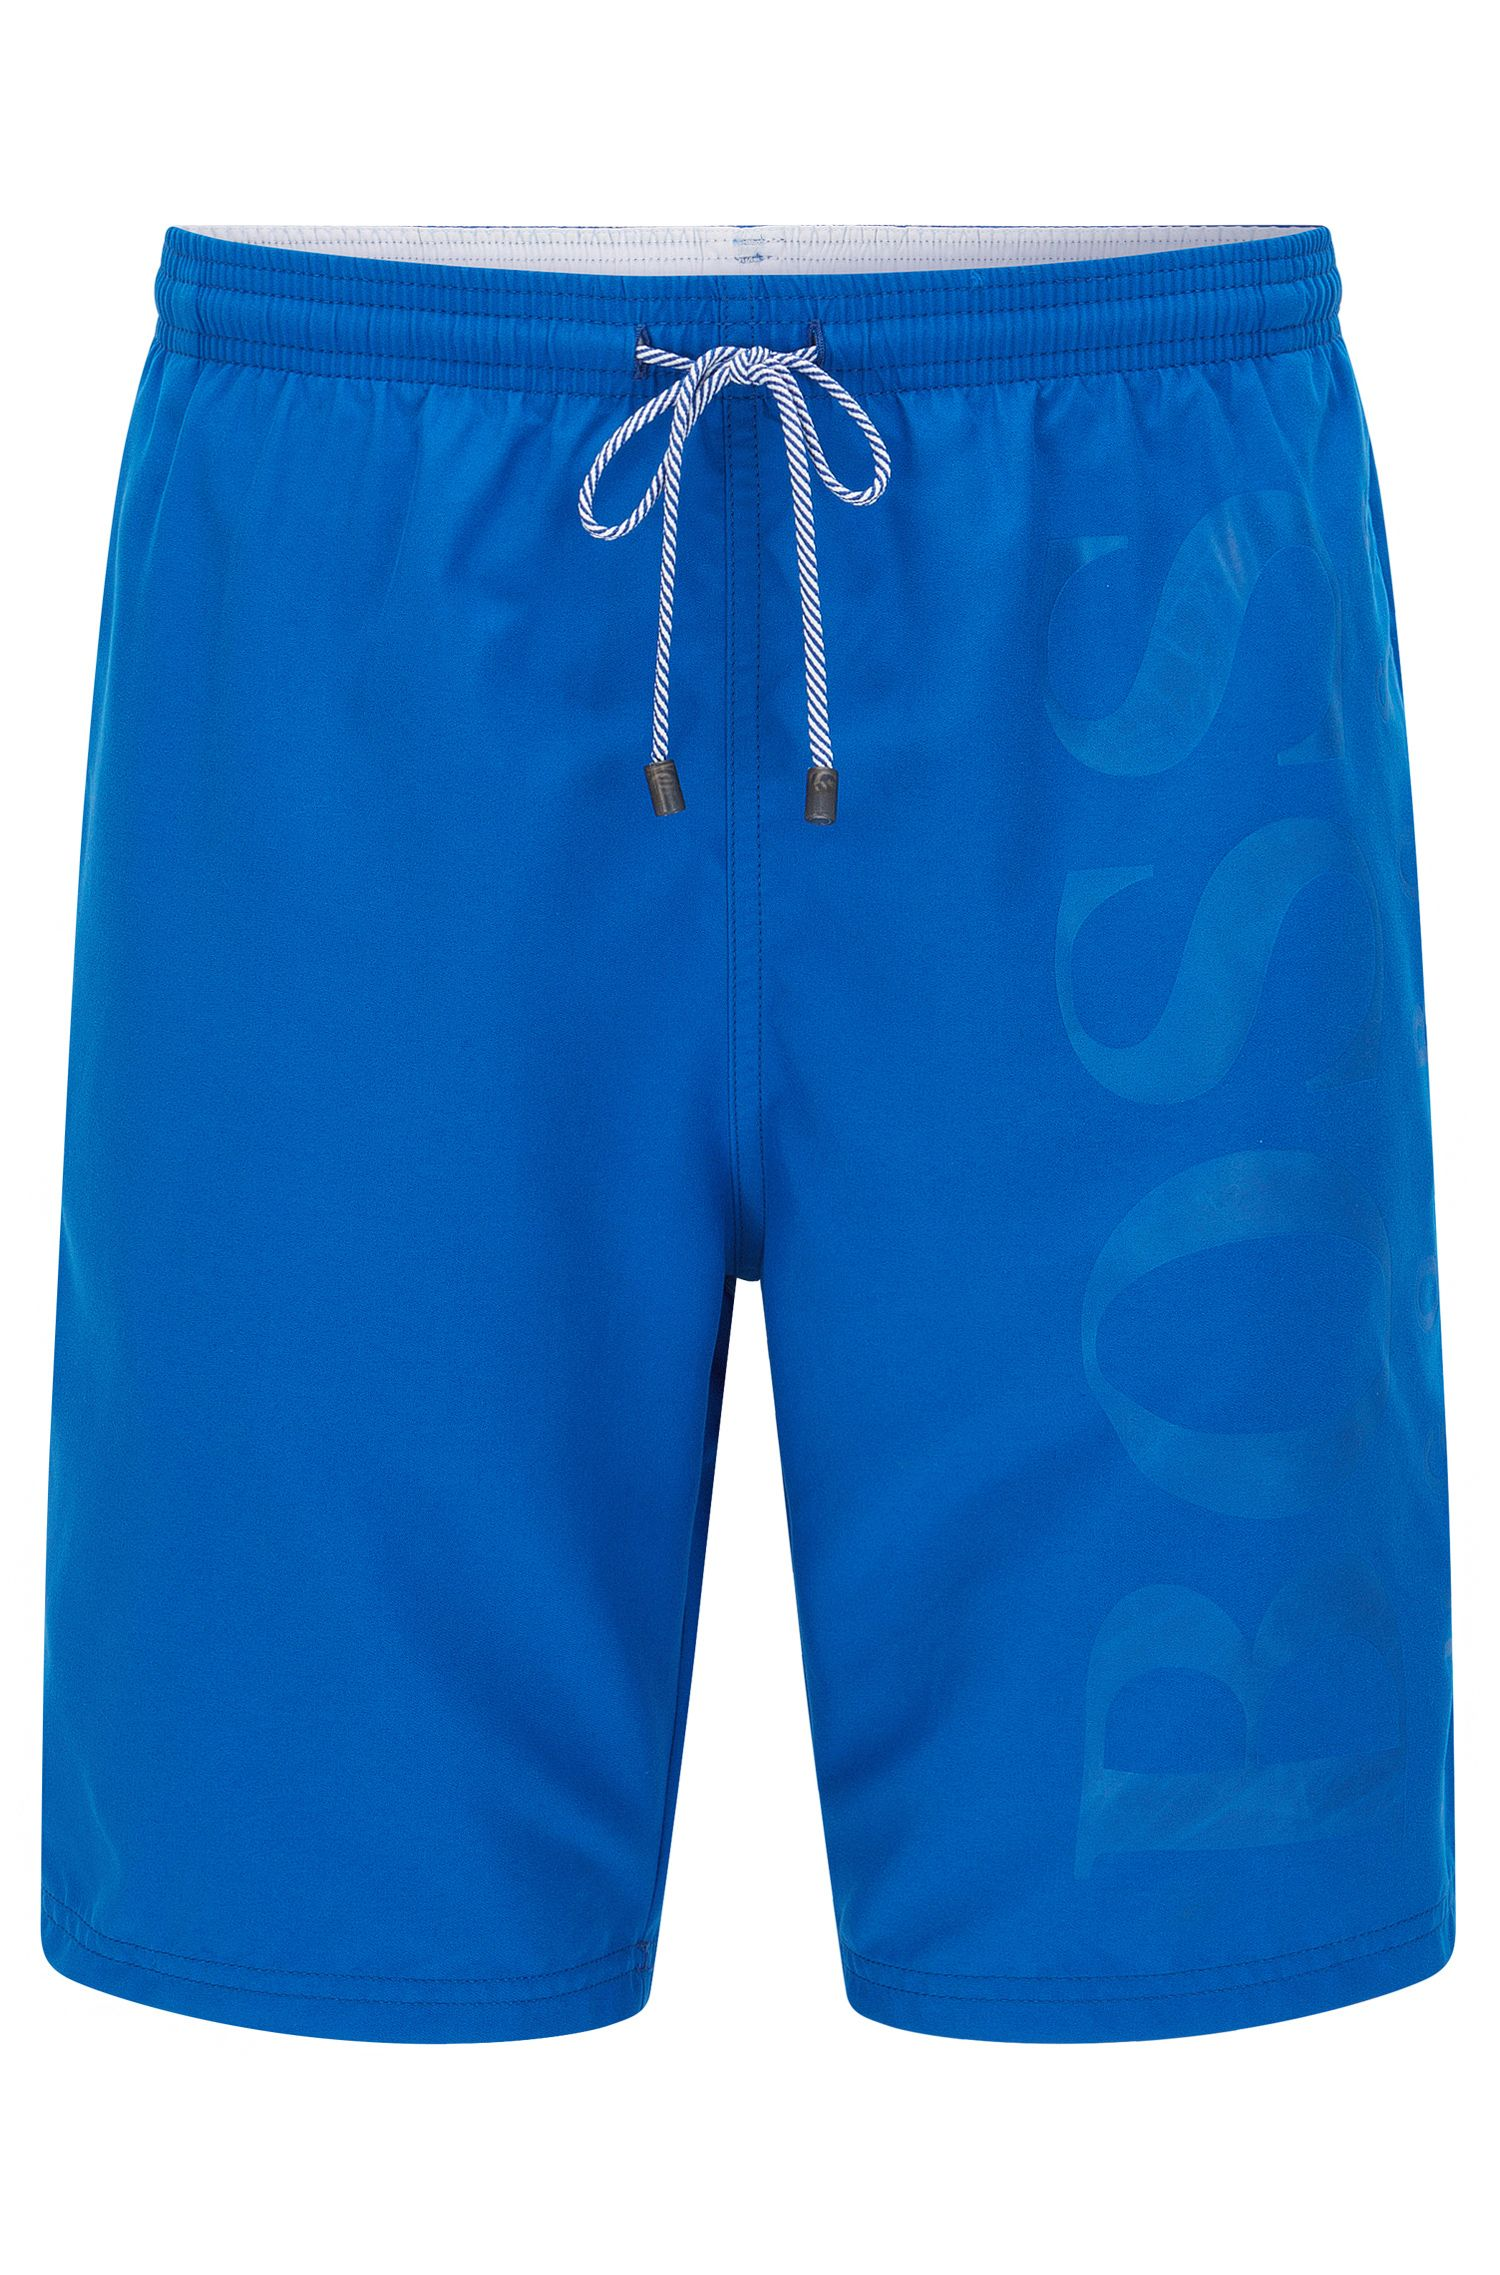 Swim shorts in quick-drying fabric with logo detail